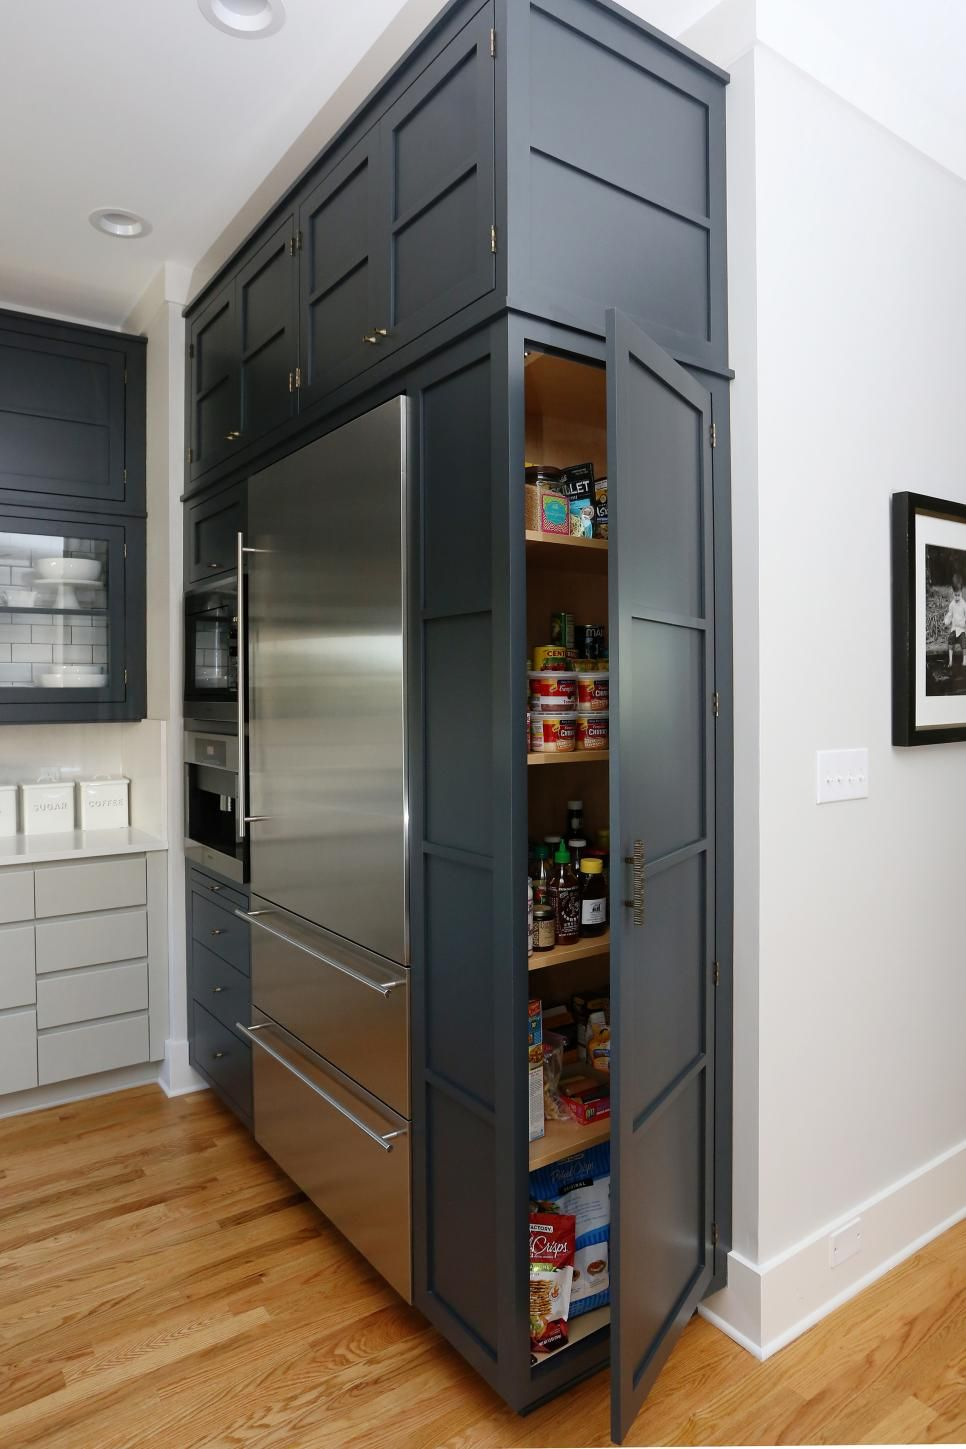 rooms viewer rooms and spaces design ideas photos of kitchen bath and living space desig on kitchen organization cabinet layout id=13369